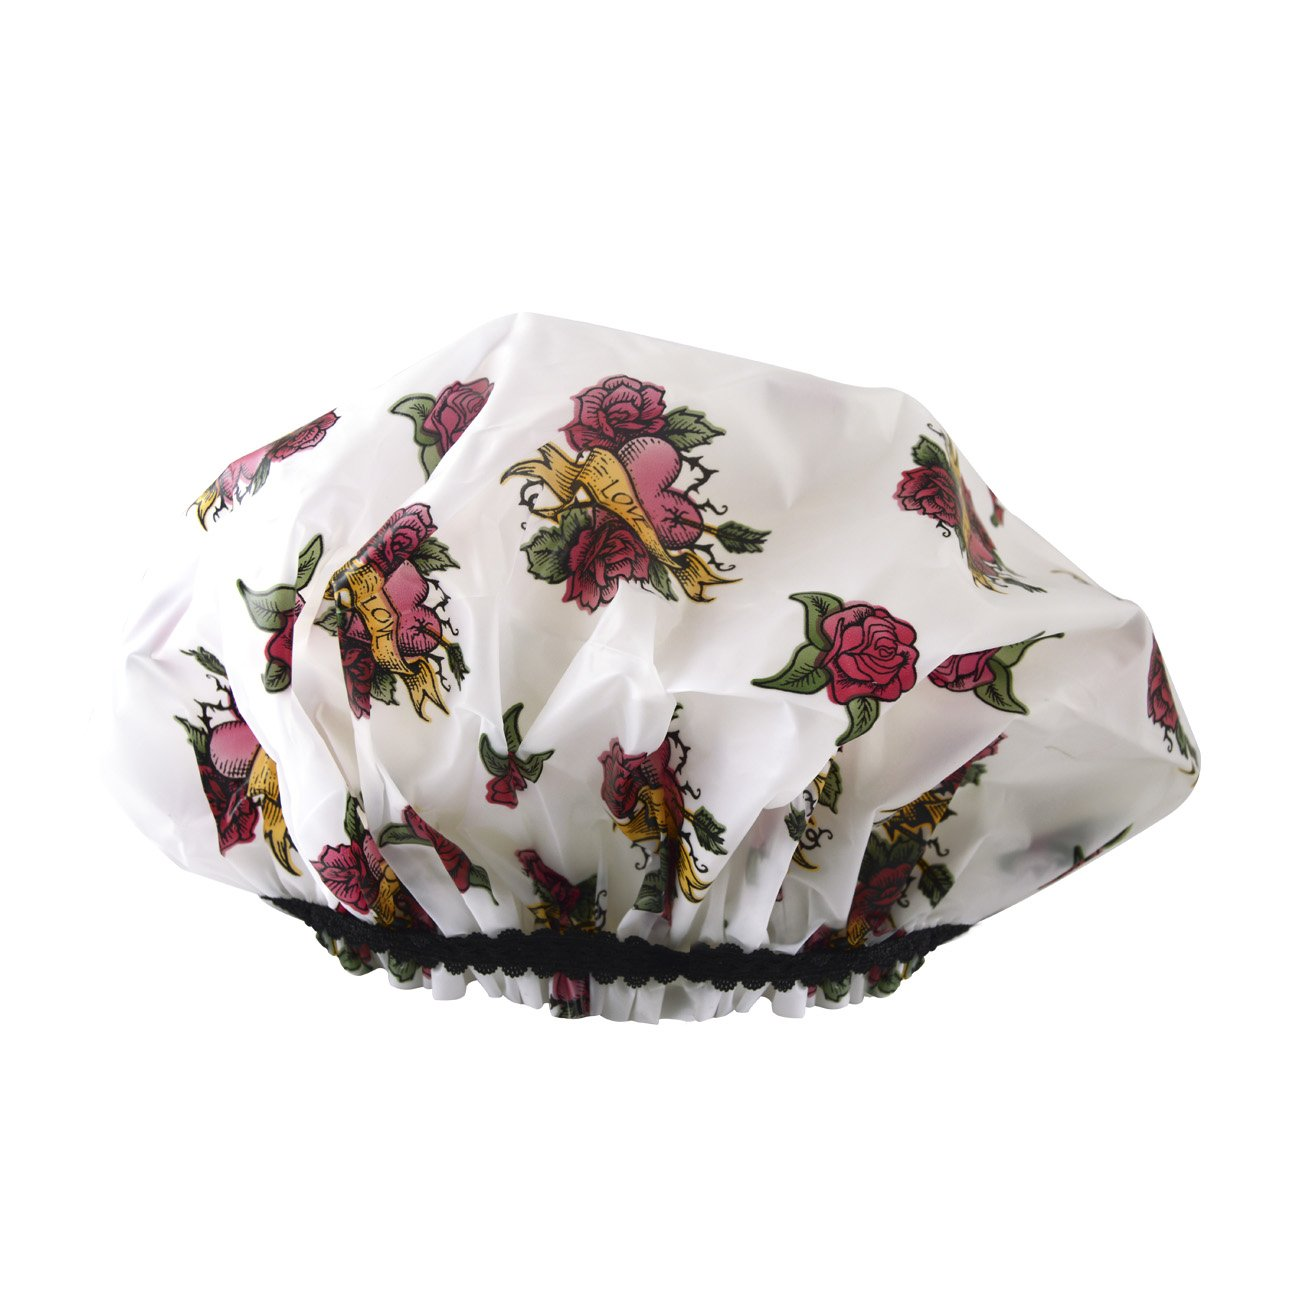 Betty Dain Stylish Design Mold Resistant Shower Cap, The Hipster Colle Countion, Tough Love 5170